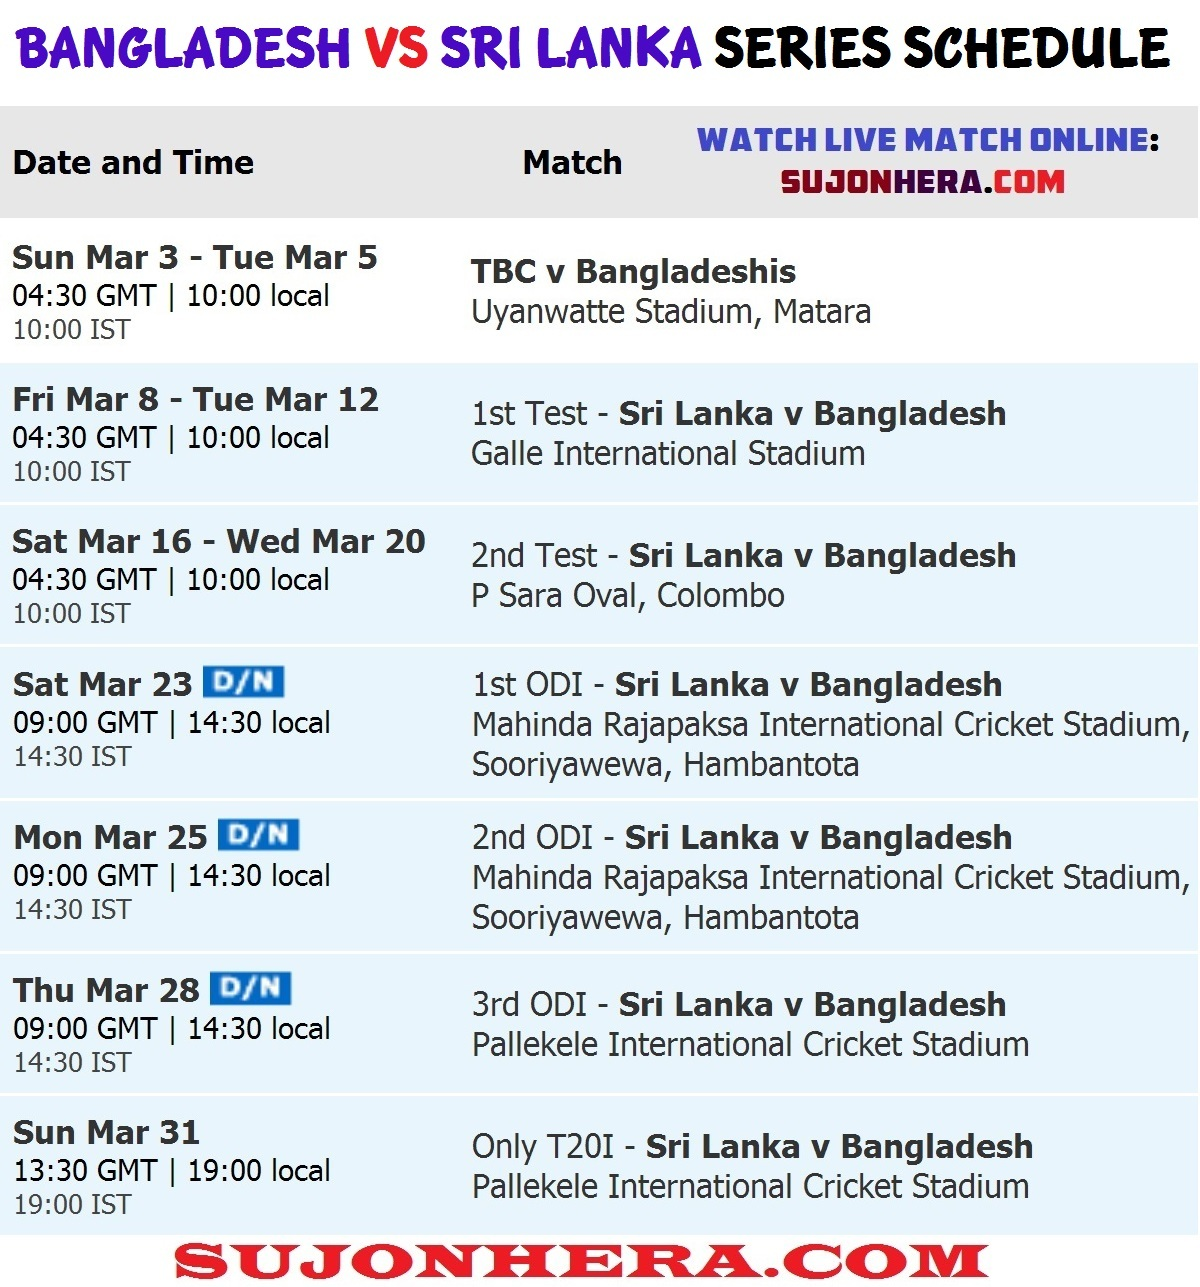 http://sujonhera.files.wordpress.com/2013/02/bangladesh-vs-sri-lanka-cricket-series-2013-schedule.jpg